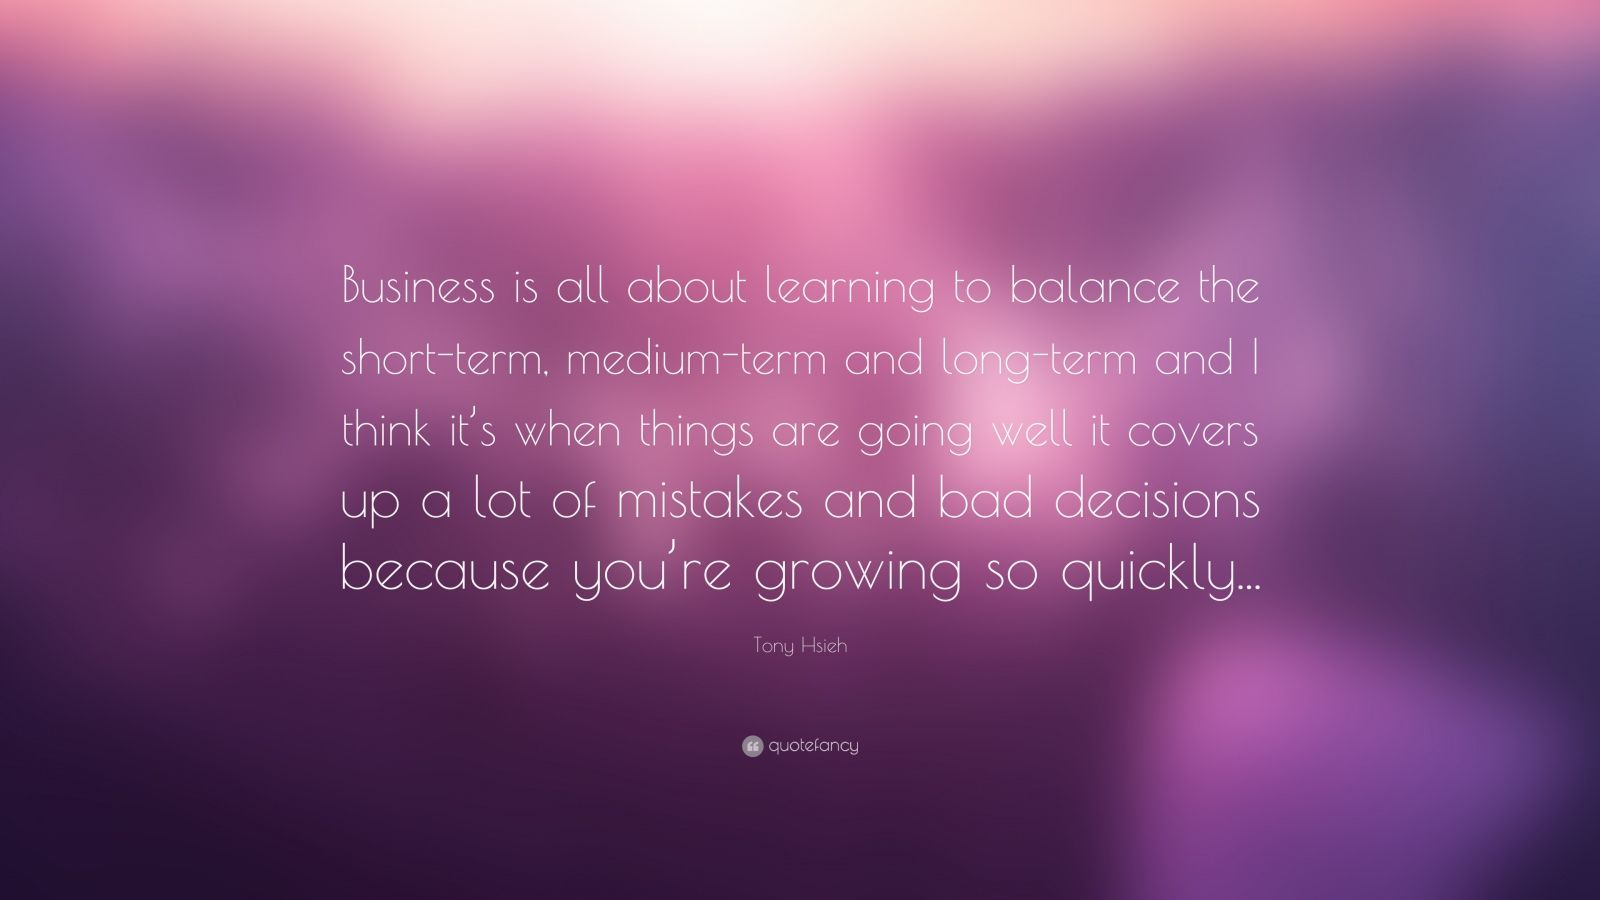 """Tony Hsieh Quote: """"Business is all about learning to balance the short-term, medium-term and long-term and I think it's when things are going well it covers up a lot of mistakes and bad decisions because you're growing so quickly..."""""""